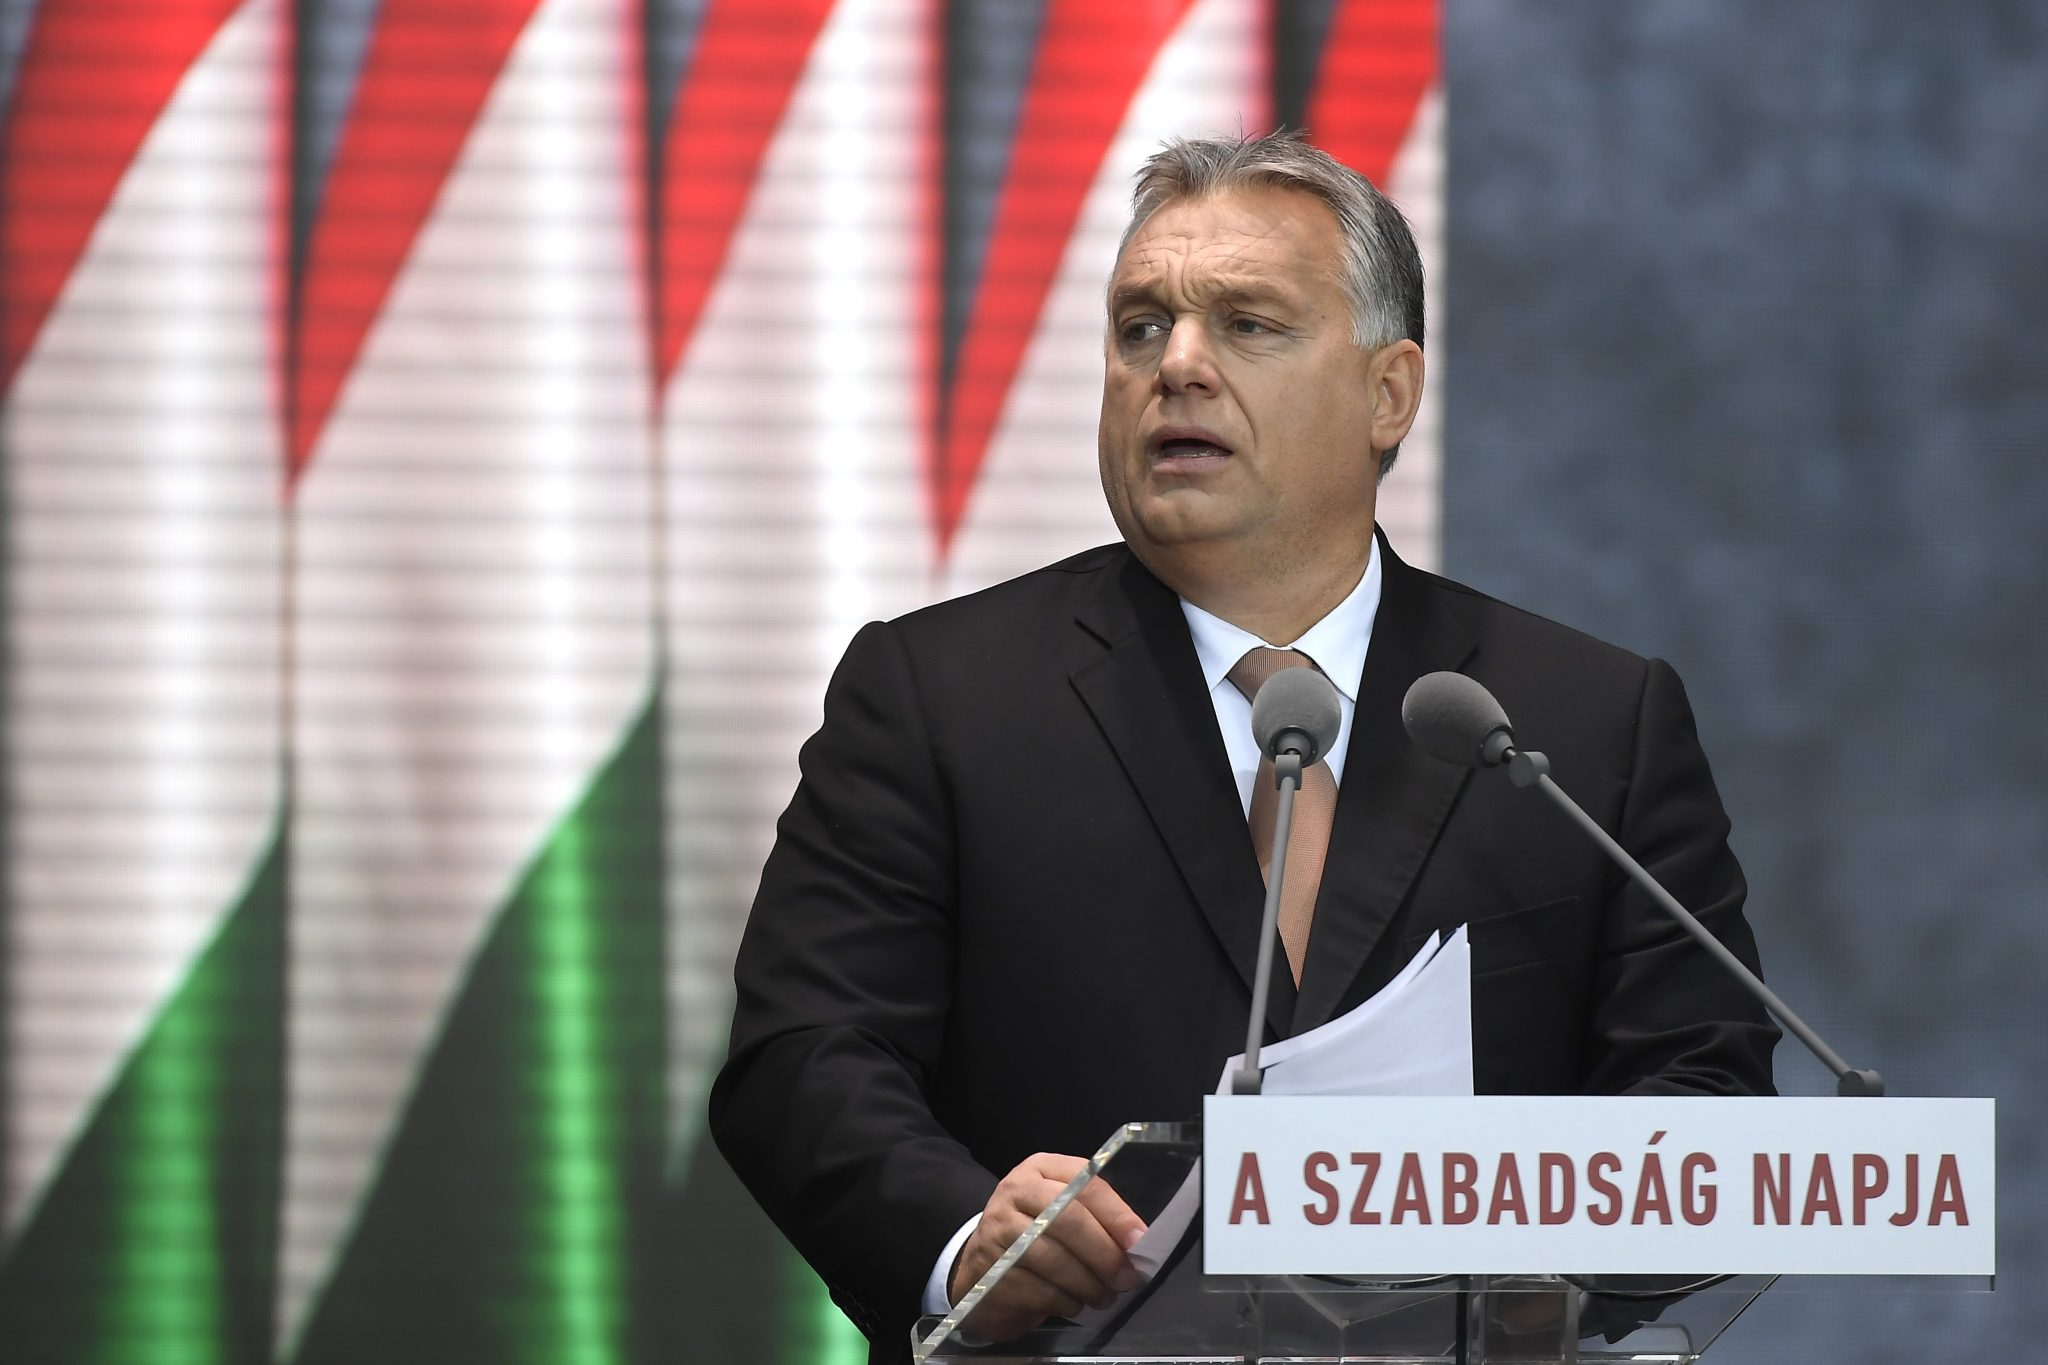 Orbán: 'Choose Independence Over Global Governing and Control'